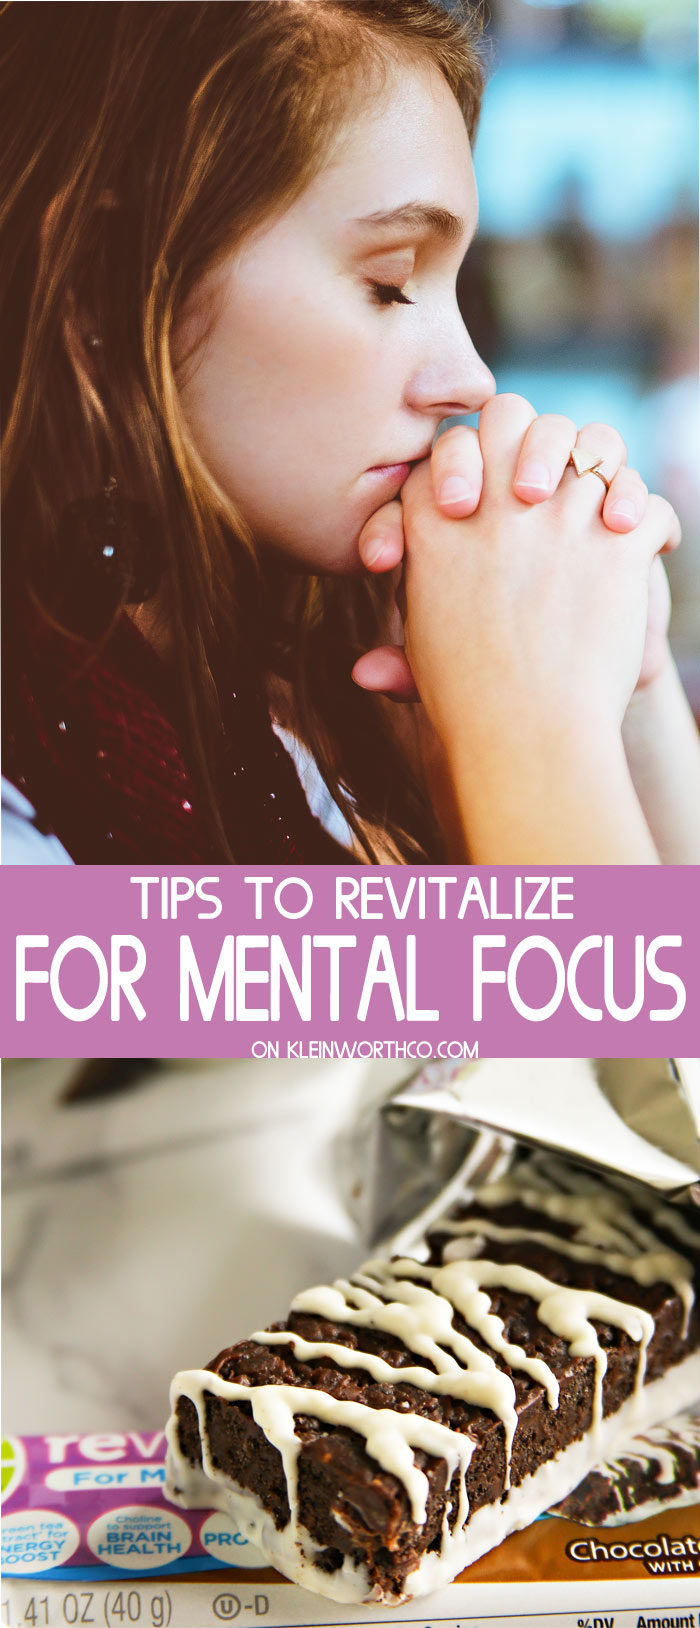 Tips to Revitalize for Mental Focus